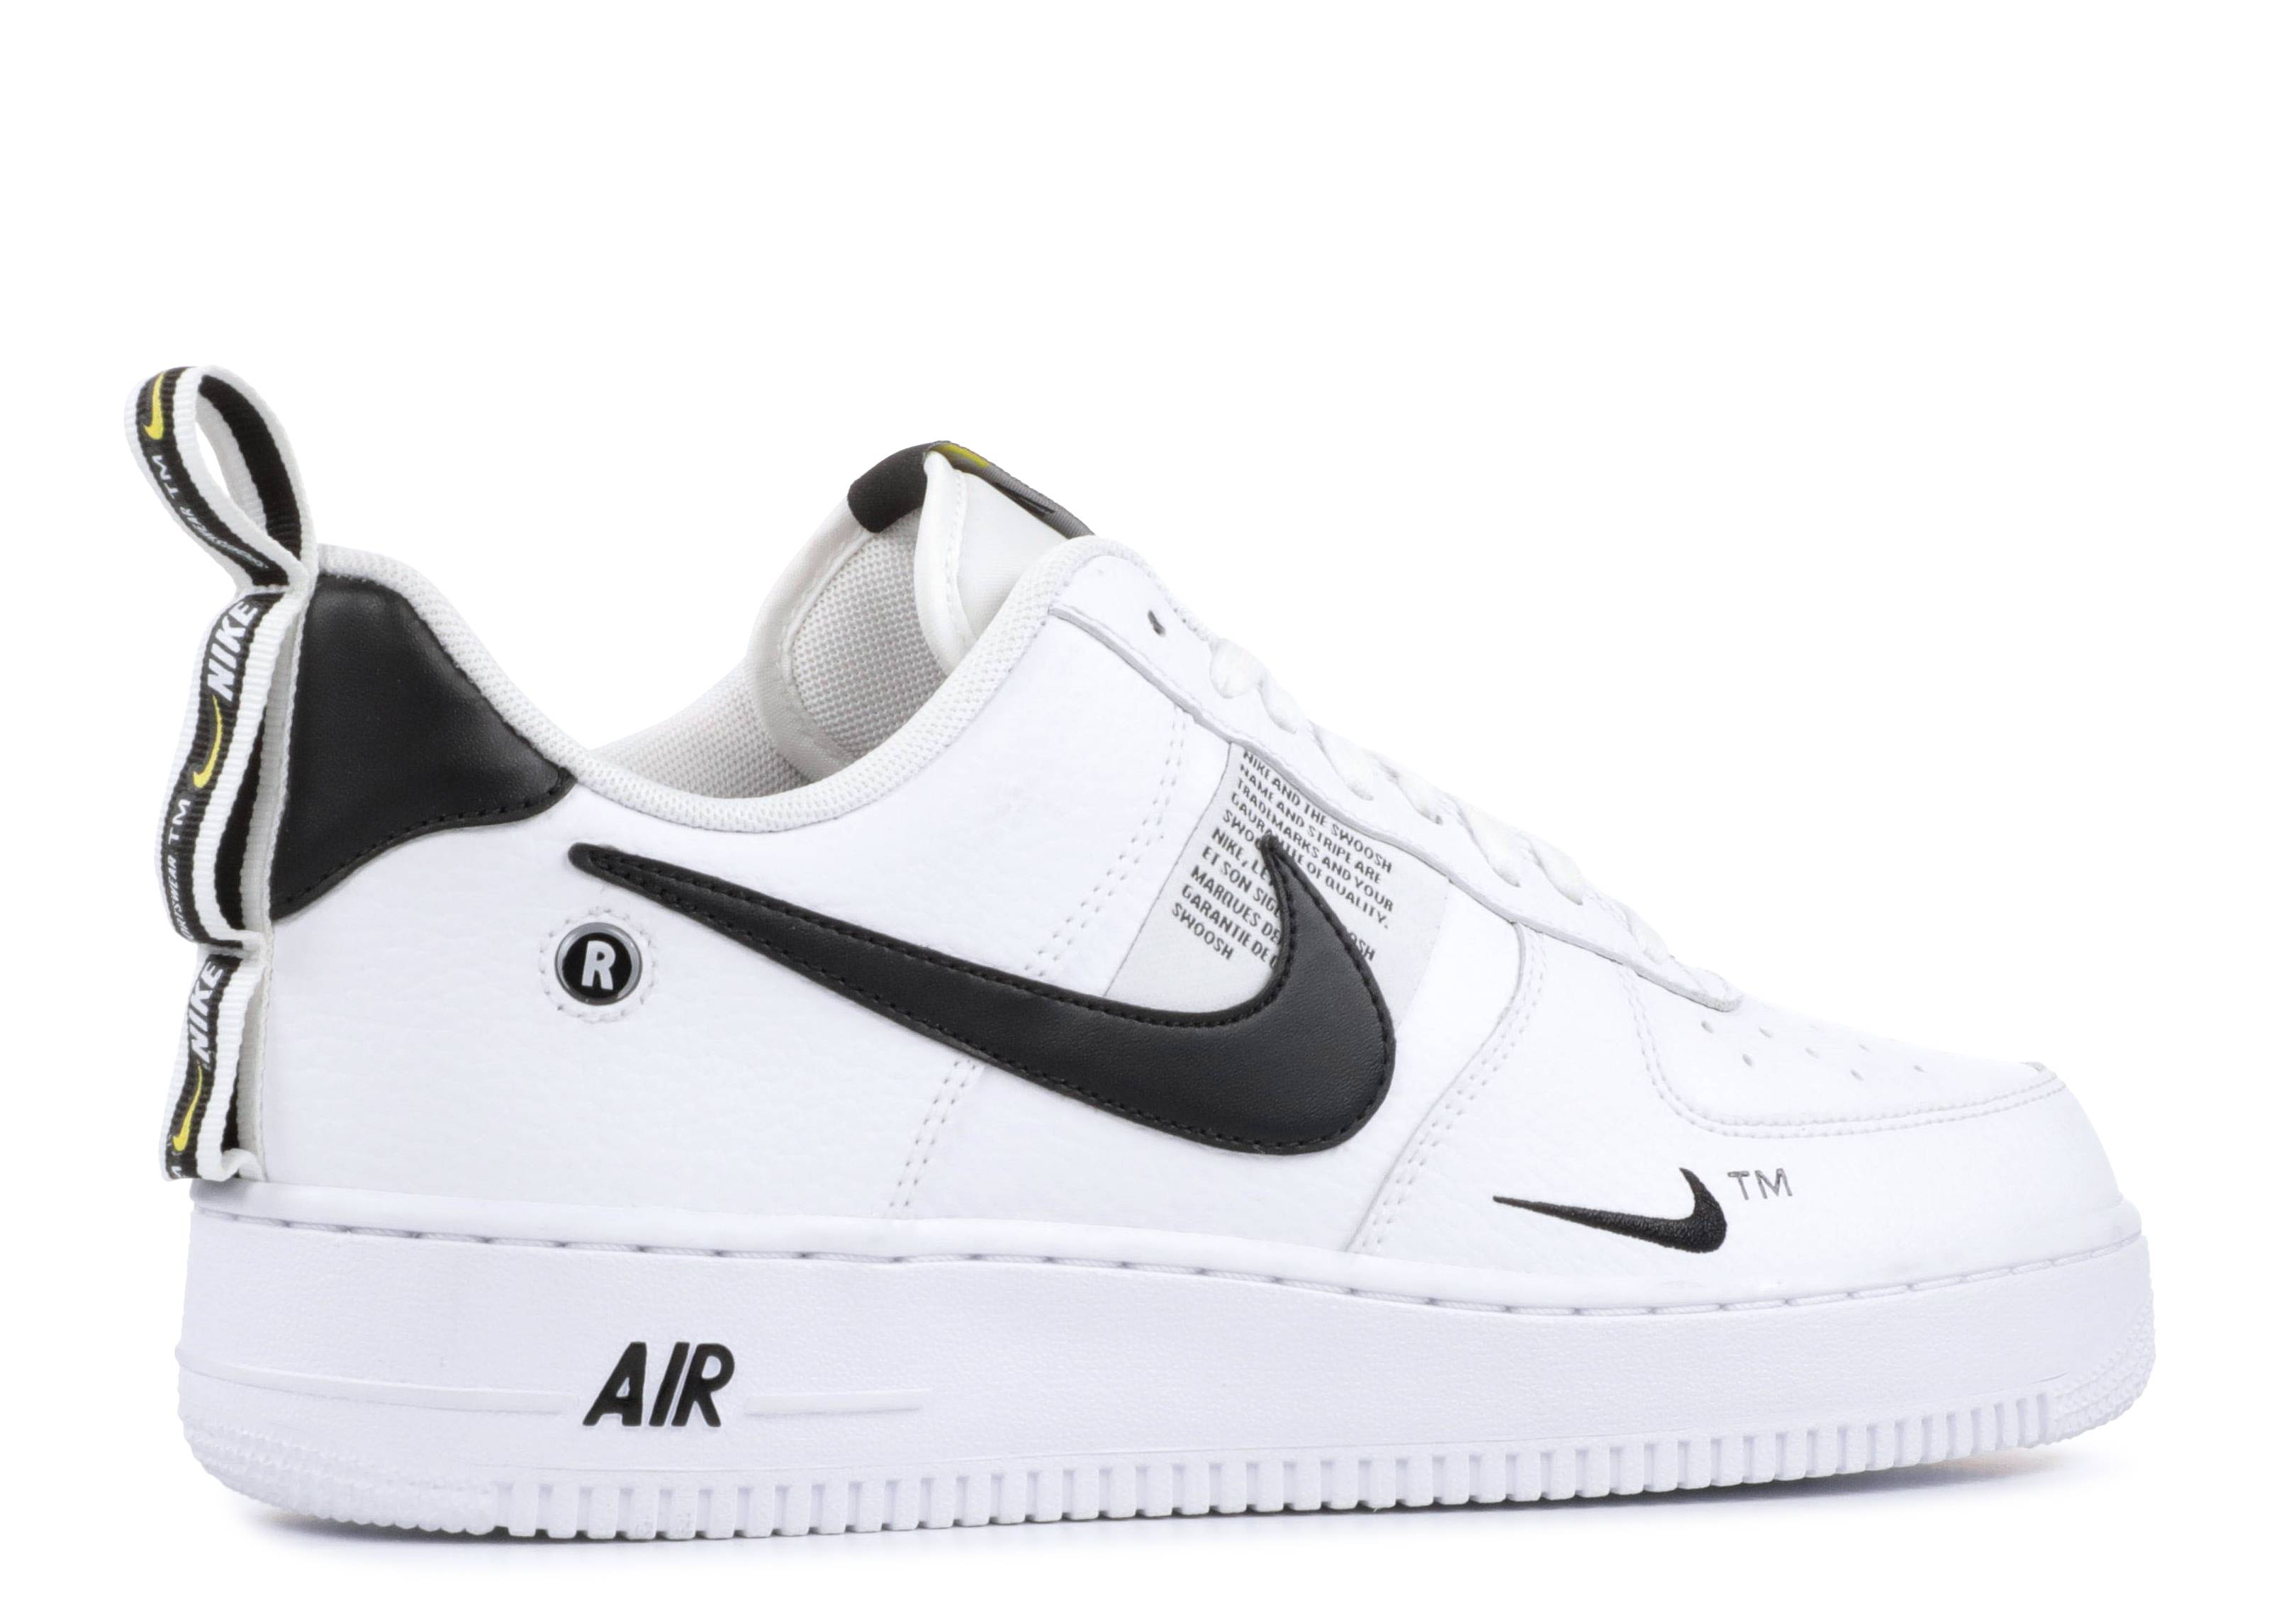 8548783d0a7c Air Force 1  07 Lv8 Utility - Nike - aj7747 100 - white white-black-tour  yellow